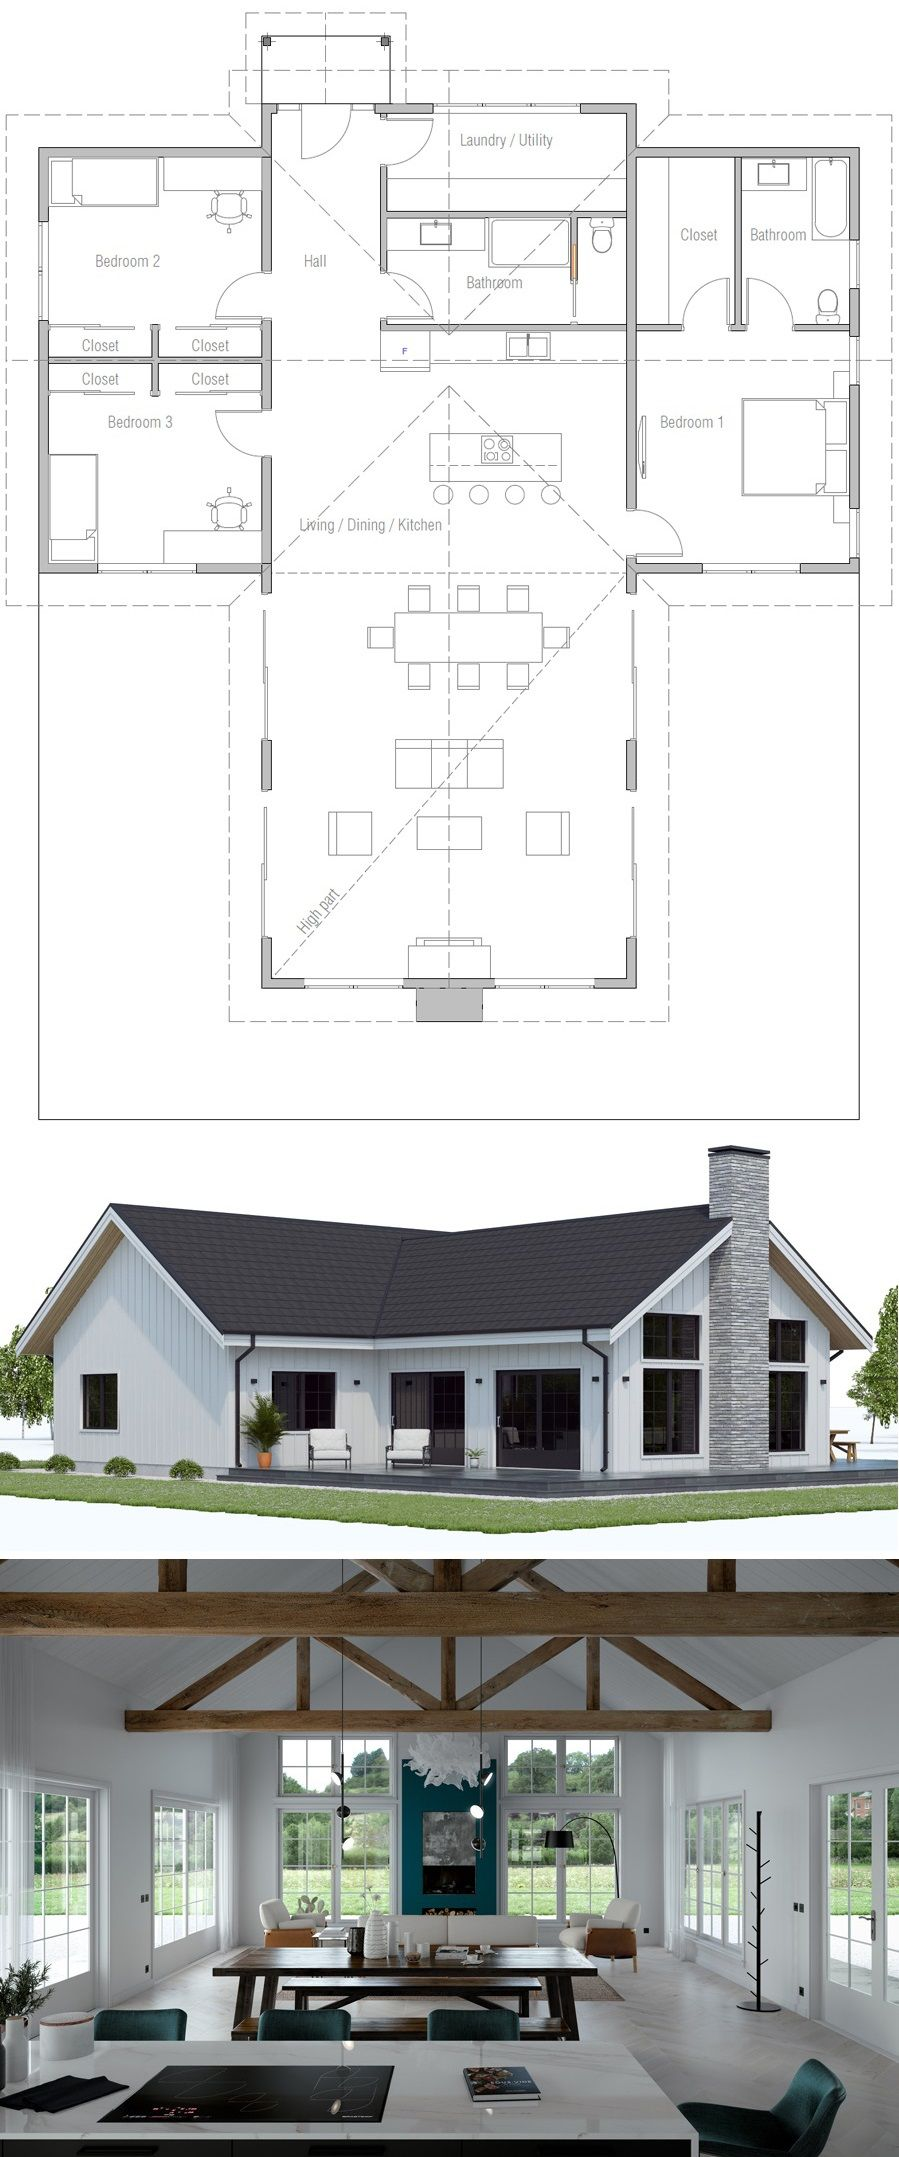 Floor Plan Ch594 Lake House Plans Dream House Plans New House Plans